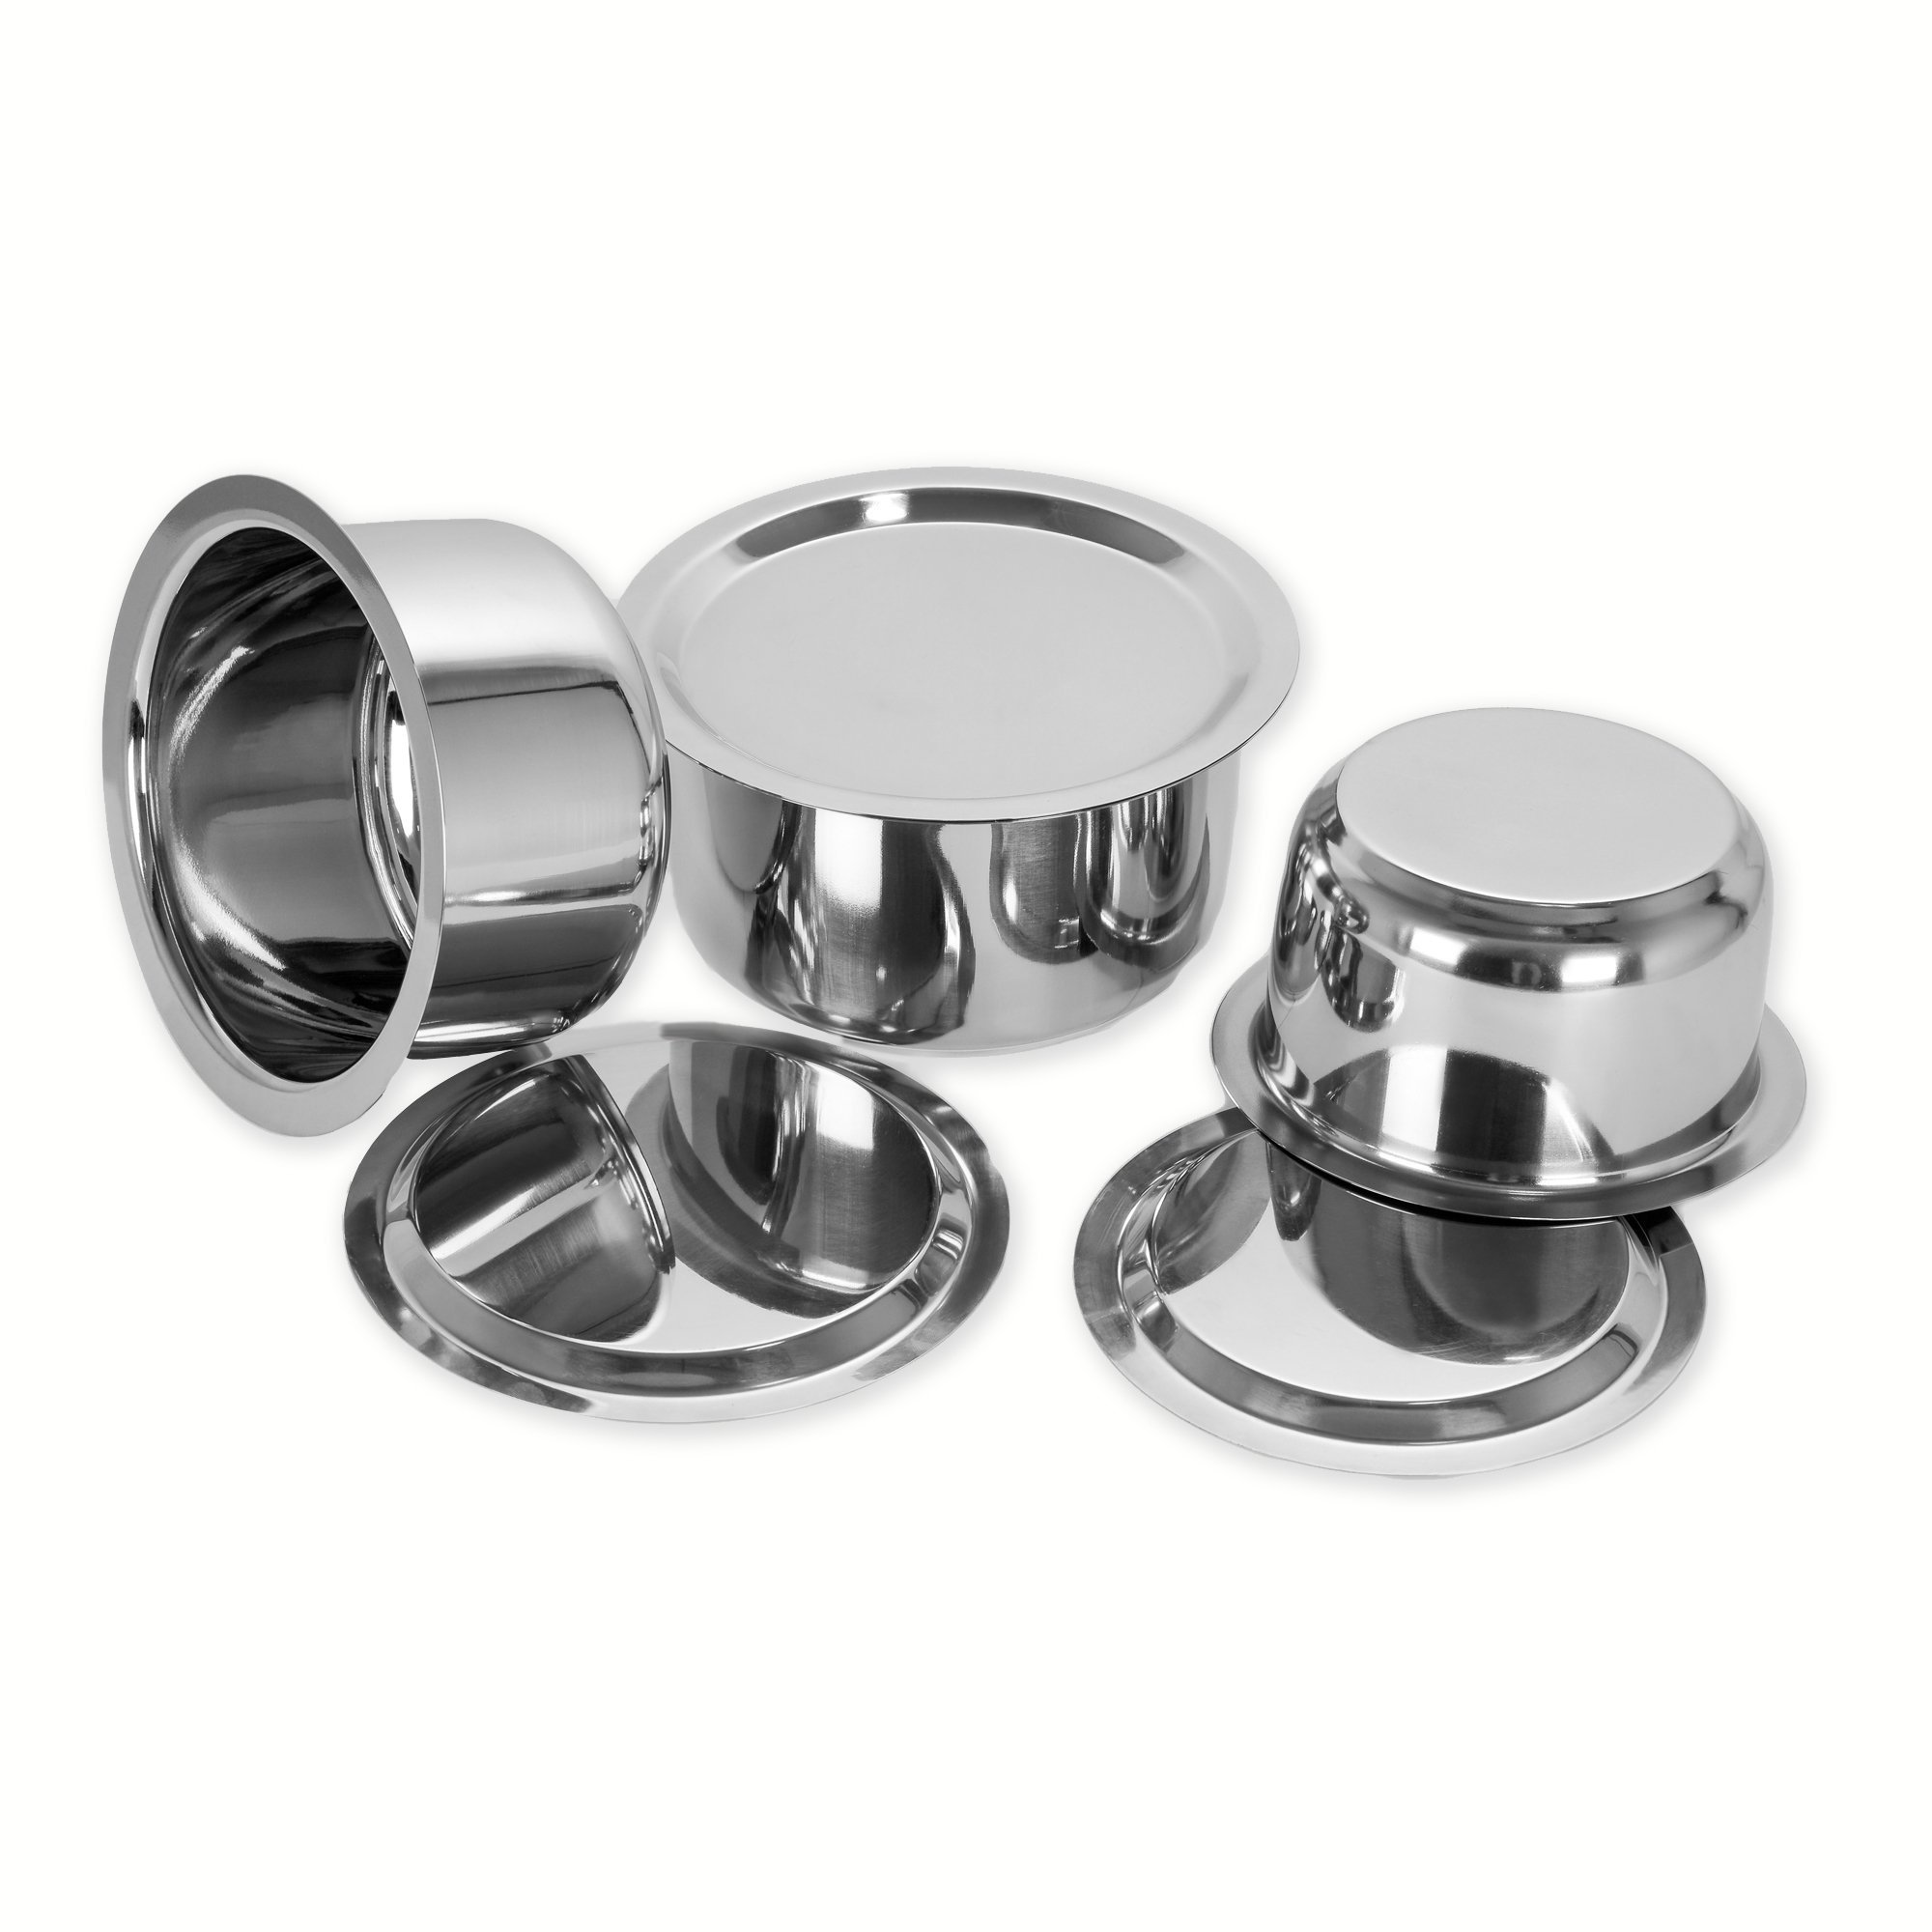 Sumeet 3 Pcs Stainless Steel Induction & Gas Stove Friendly Container Set/Tope / Cookware Set With Lids Size No.10 To No.12